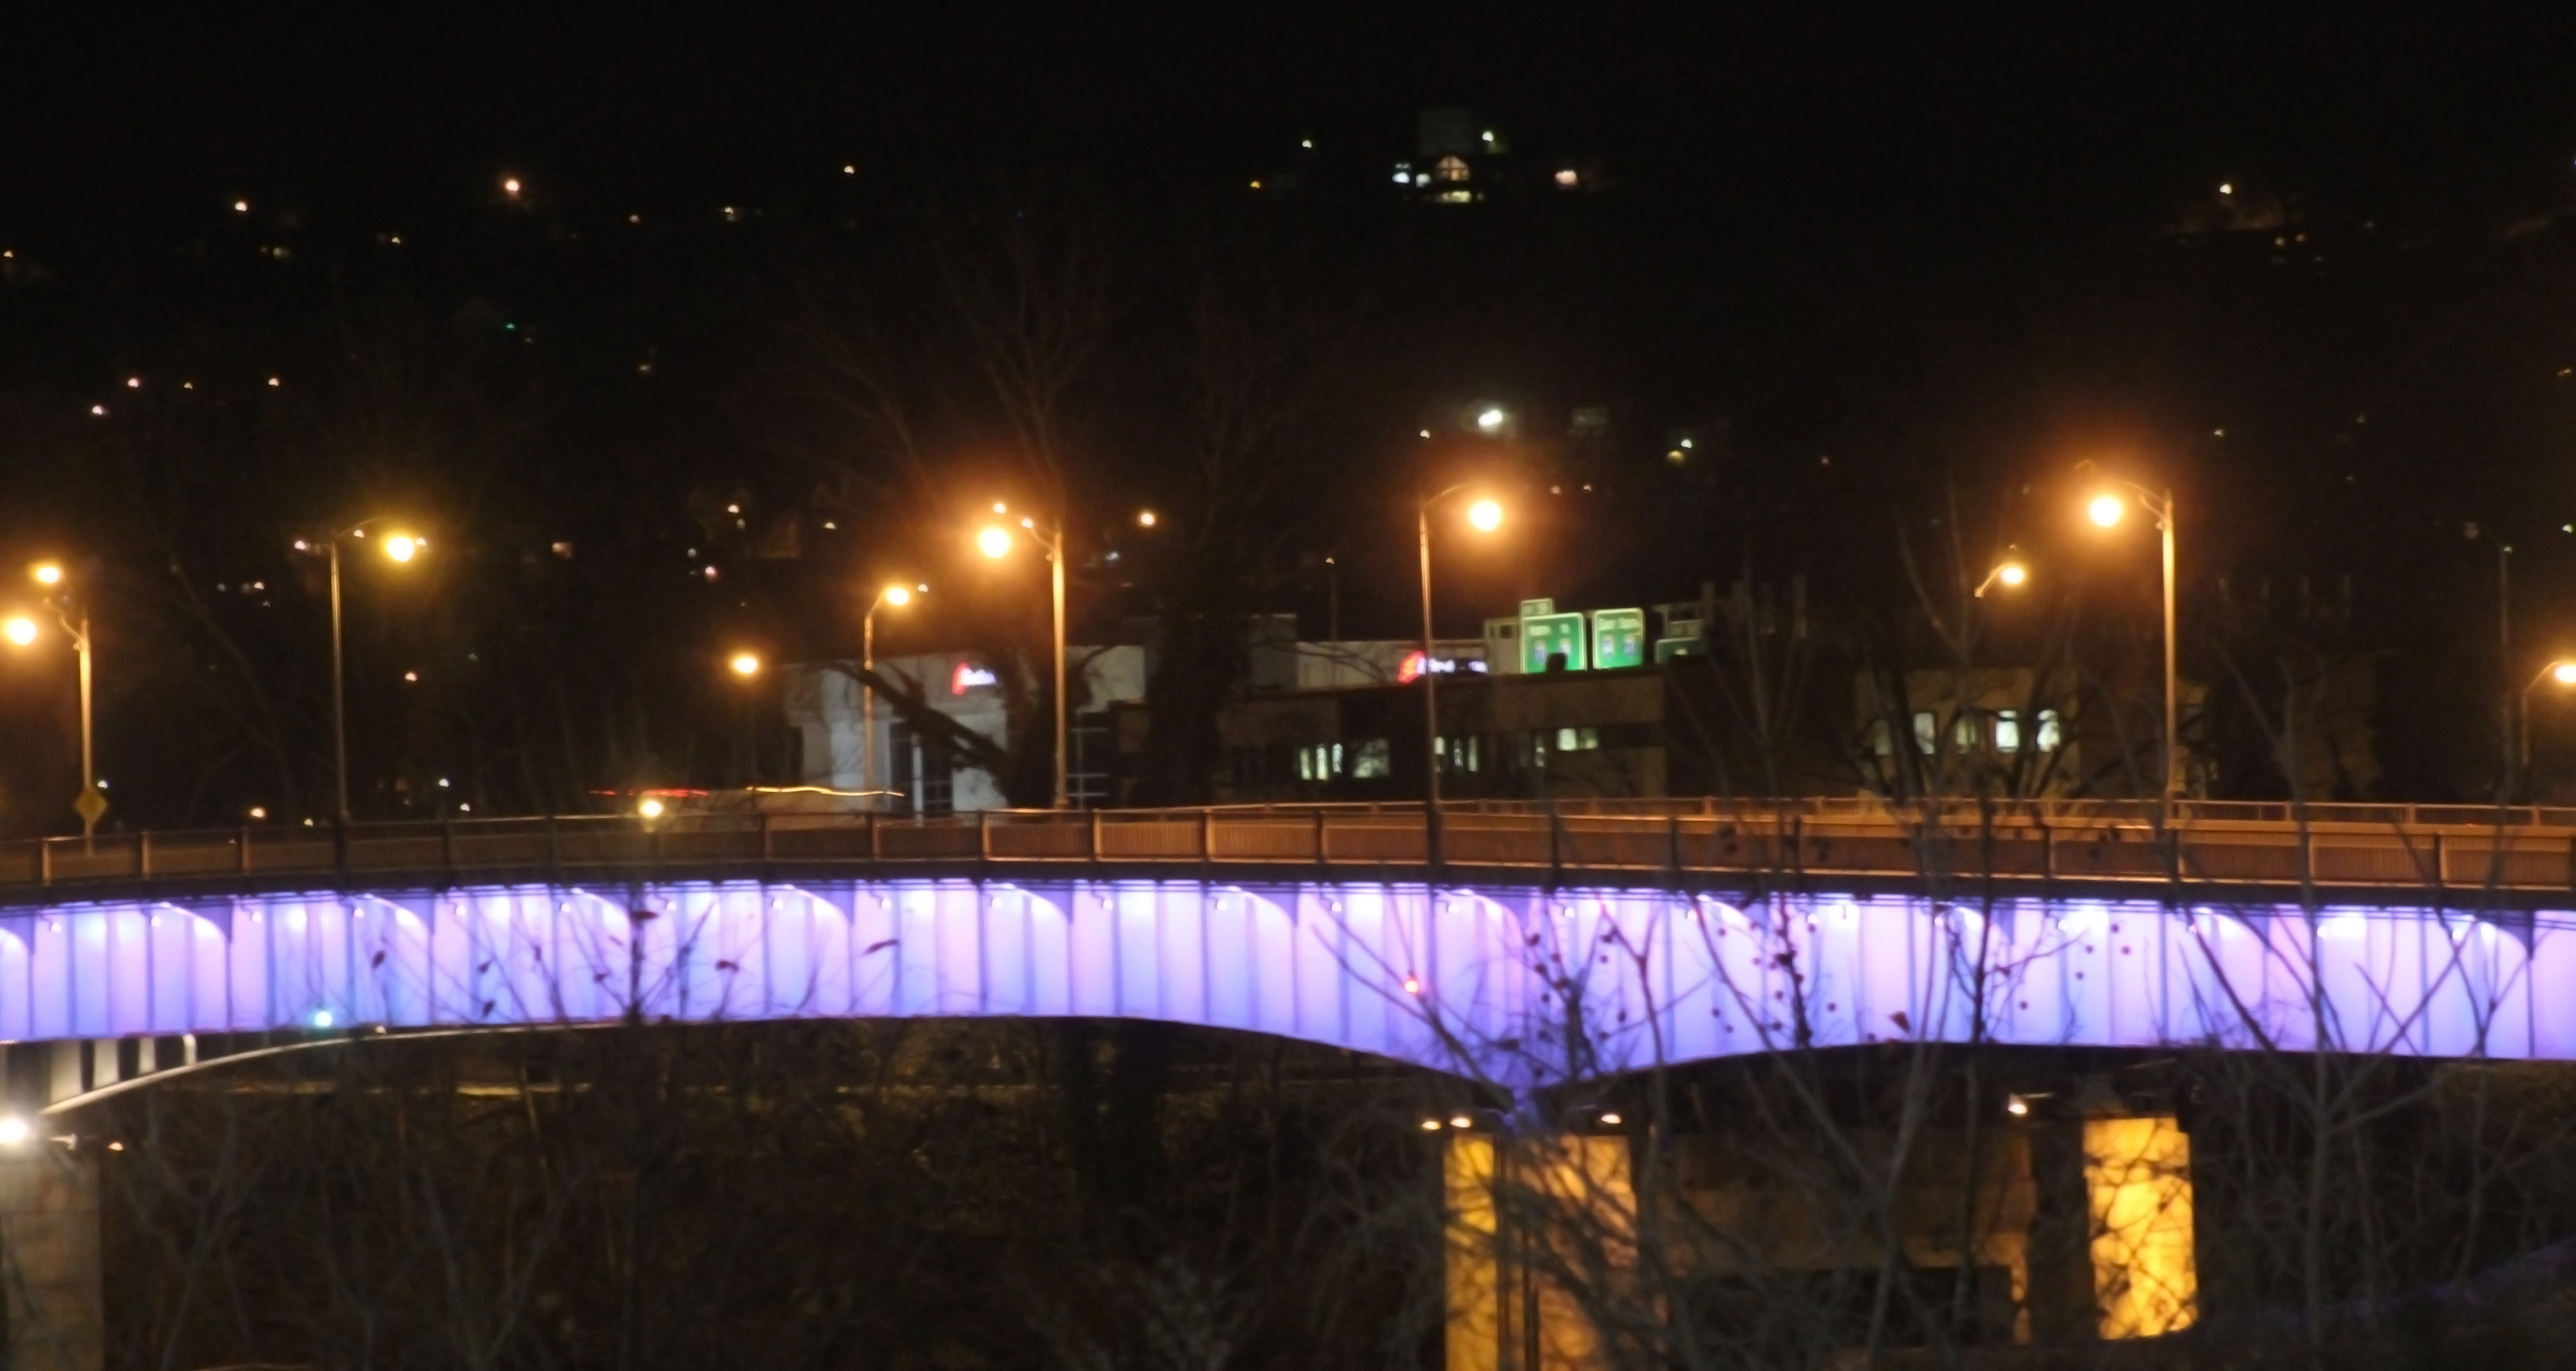 Charleston WV Bridge 2, Bridge, Charleston, Lights, Night, HQ Photo